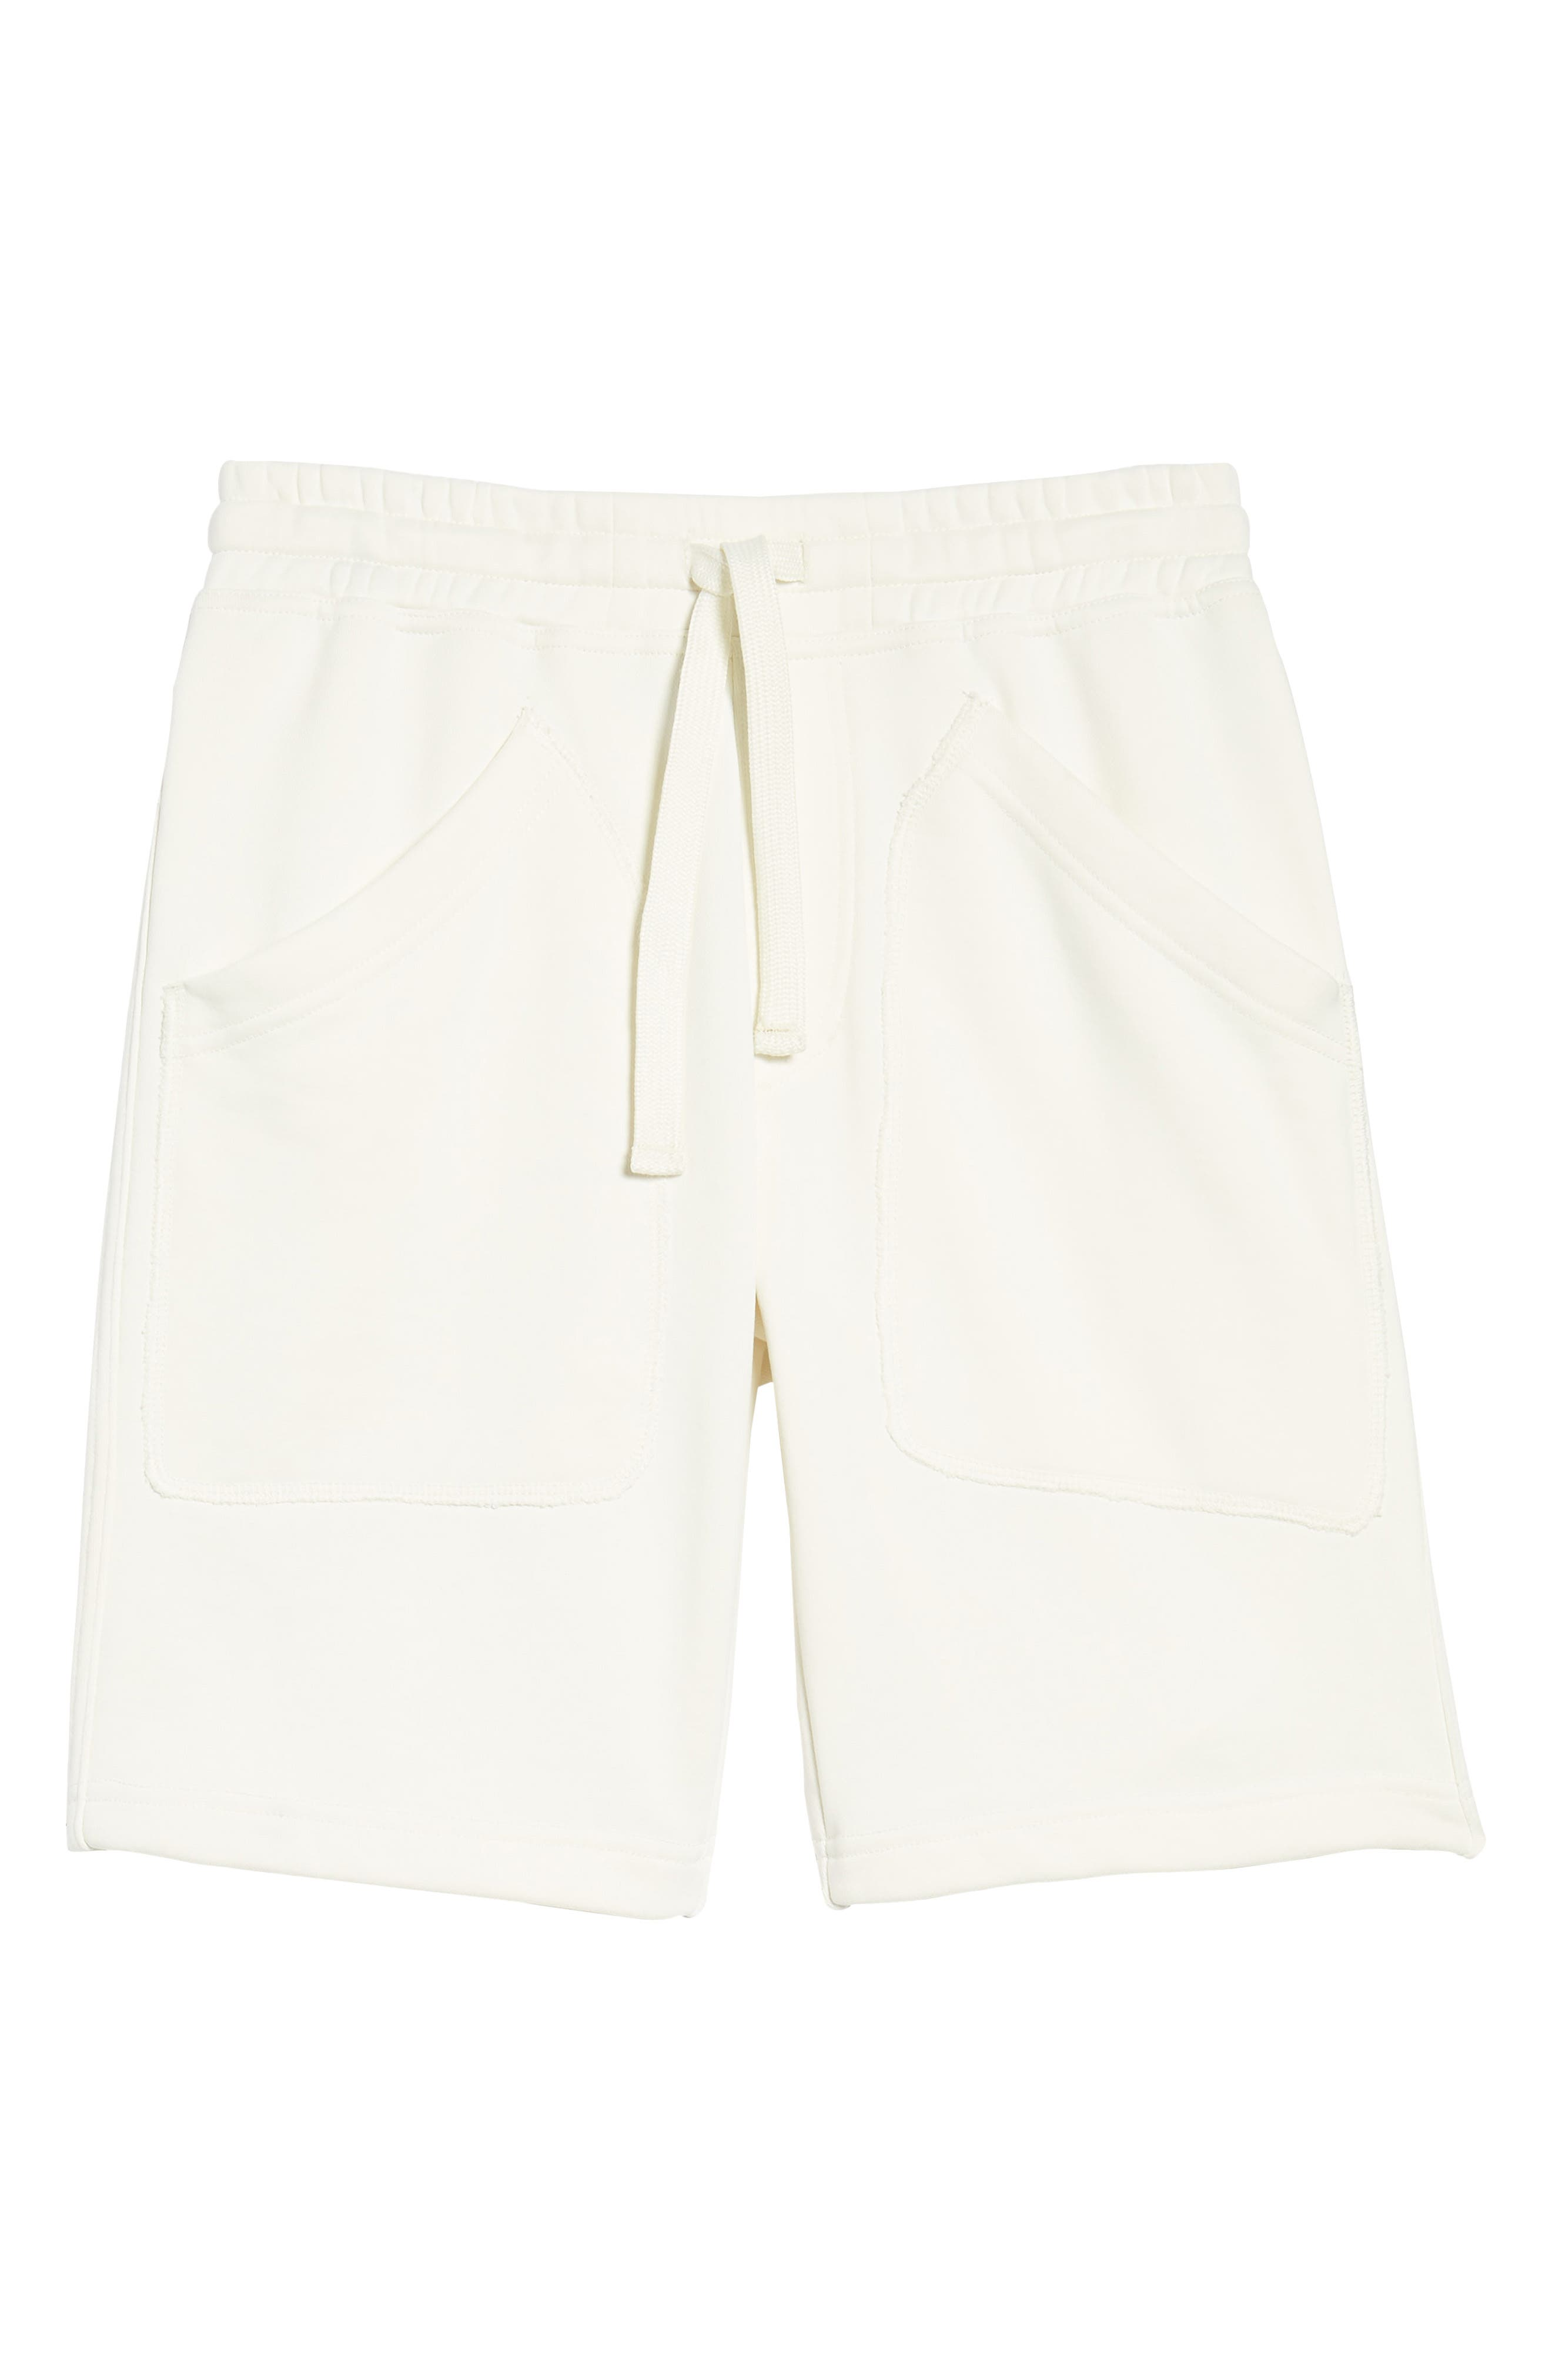 Lux French Terry Shorts,                             Alternate thumbnail 6, color,                             250